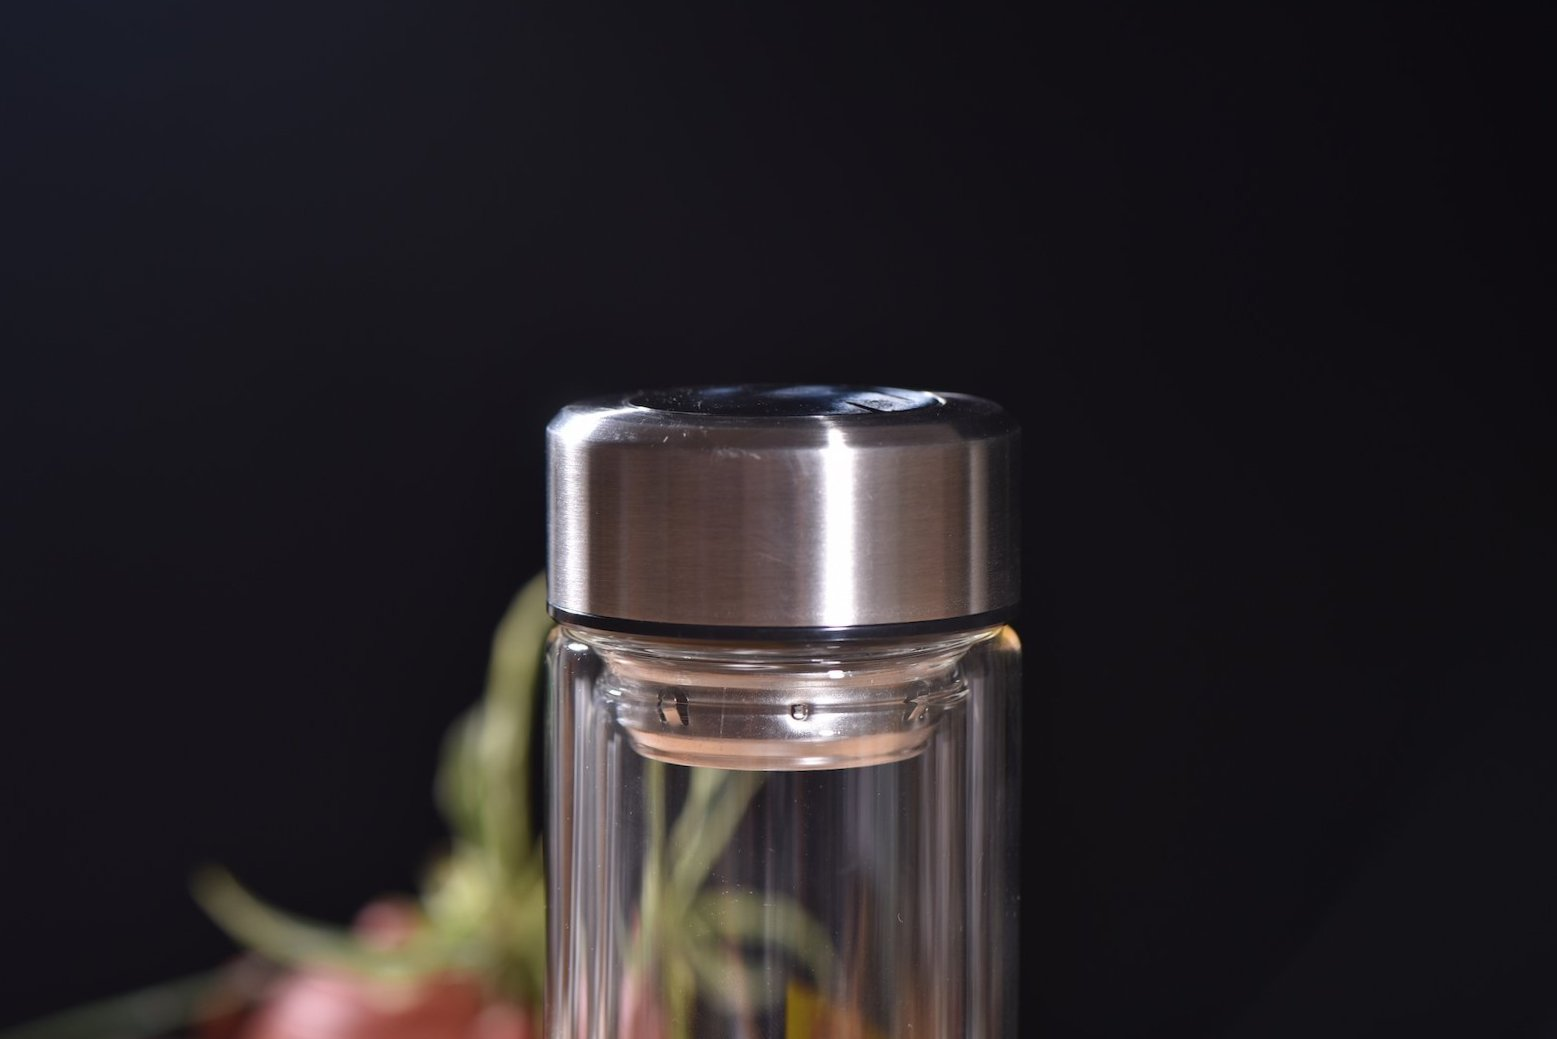 yunnan sourcing logo insulated double layer glass thermos - Glass Thermos